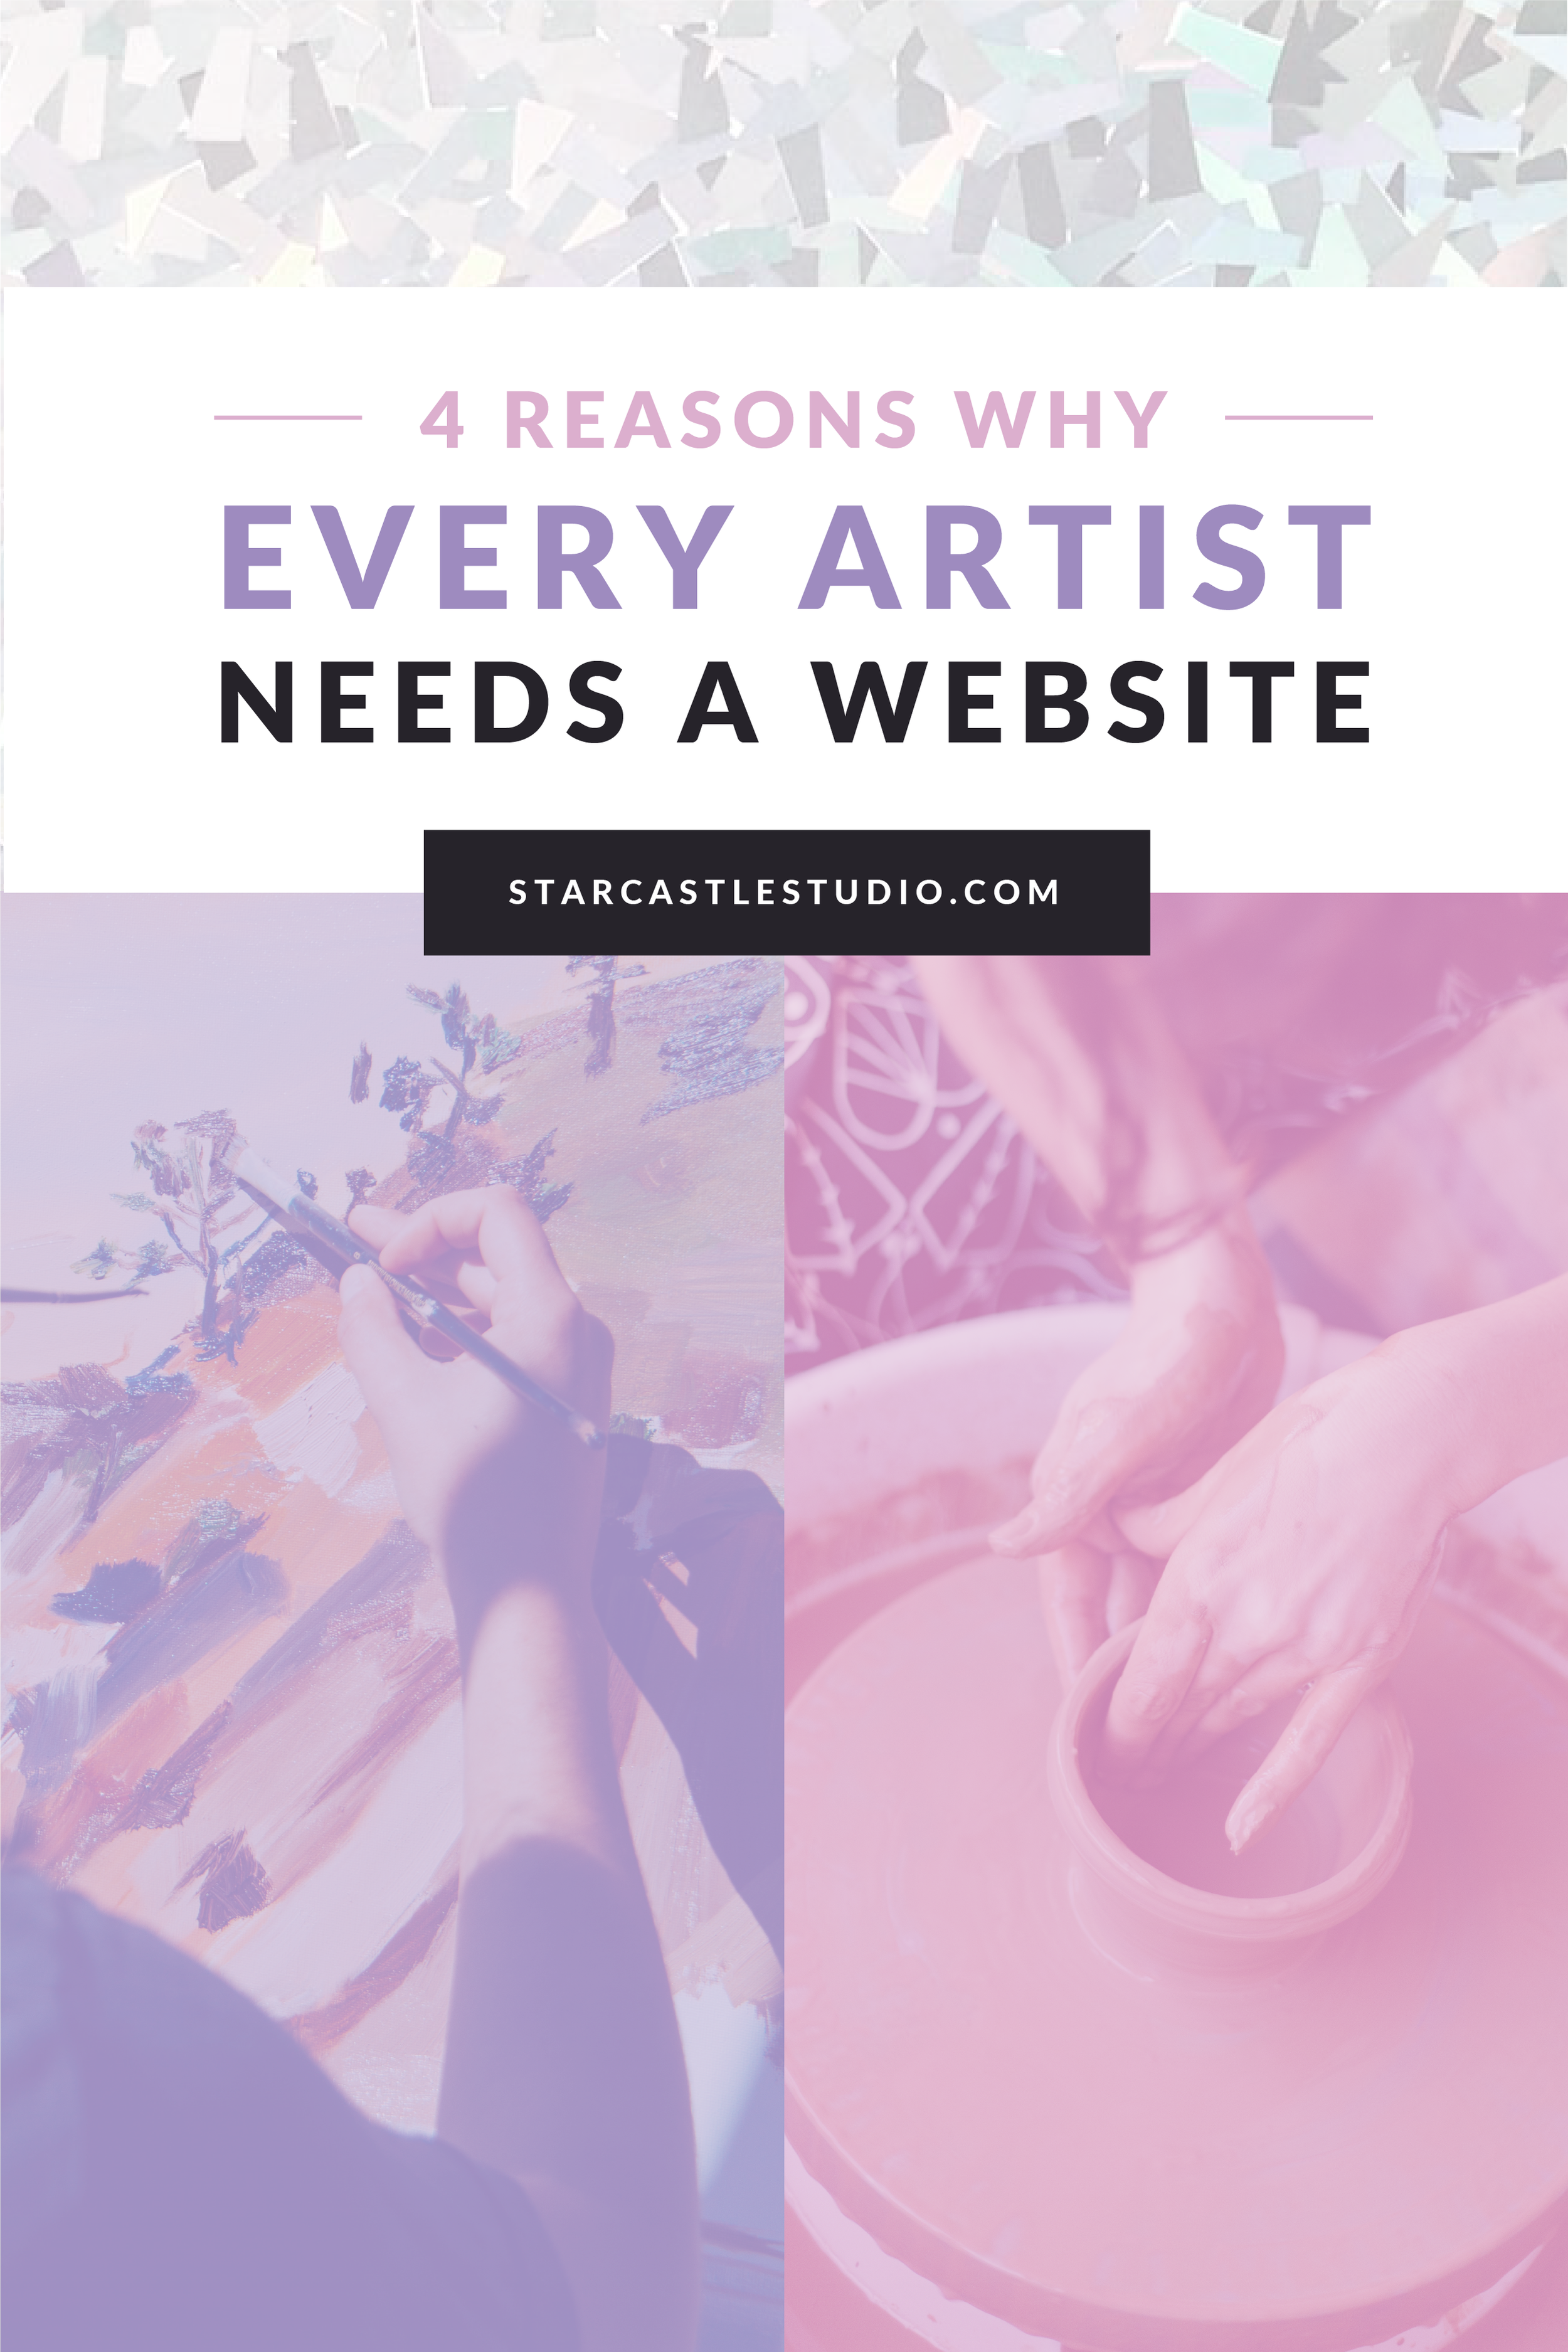 Why every artist needs a website